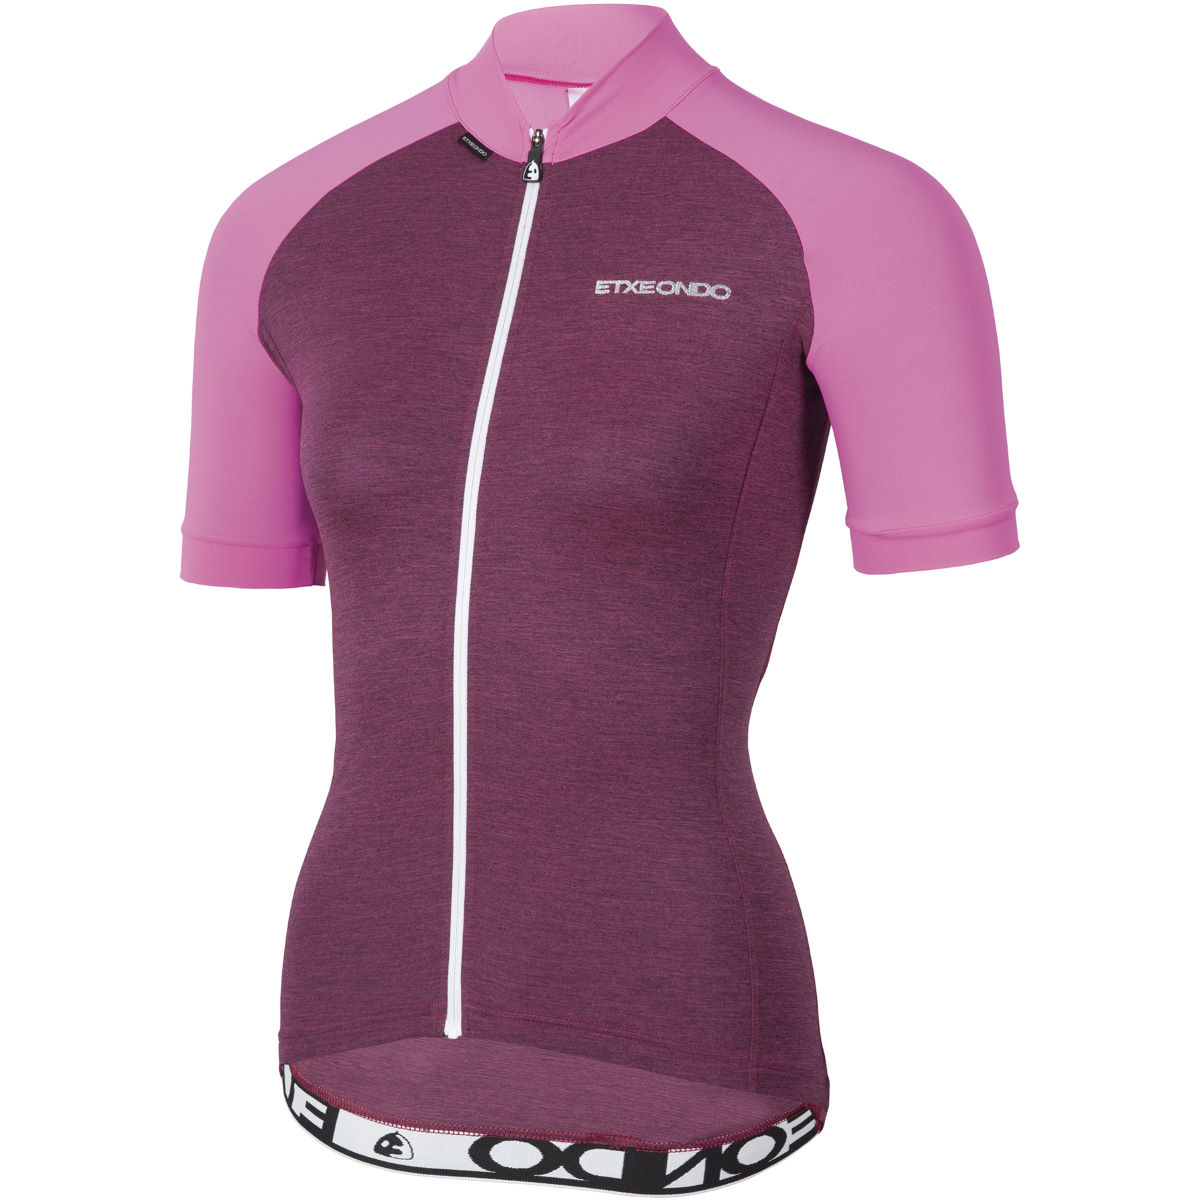 Image of Maillot Femme Etxeondo Terra (manches courtes) - M Pink Fluro